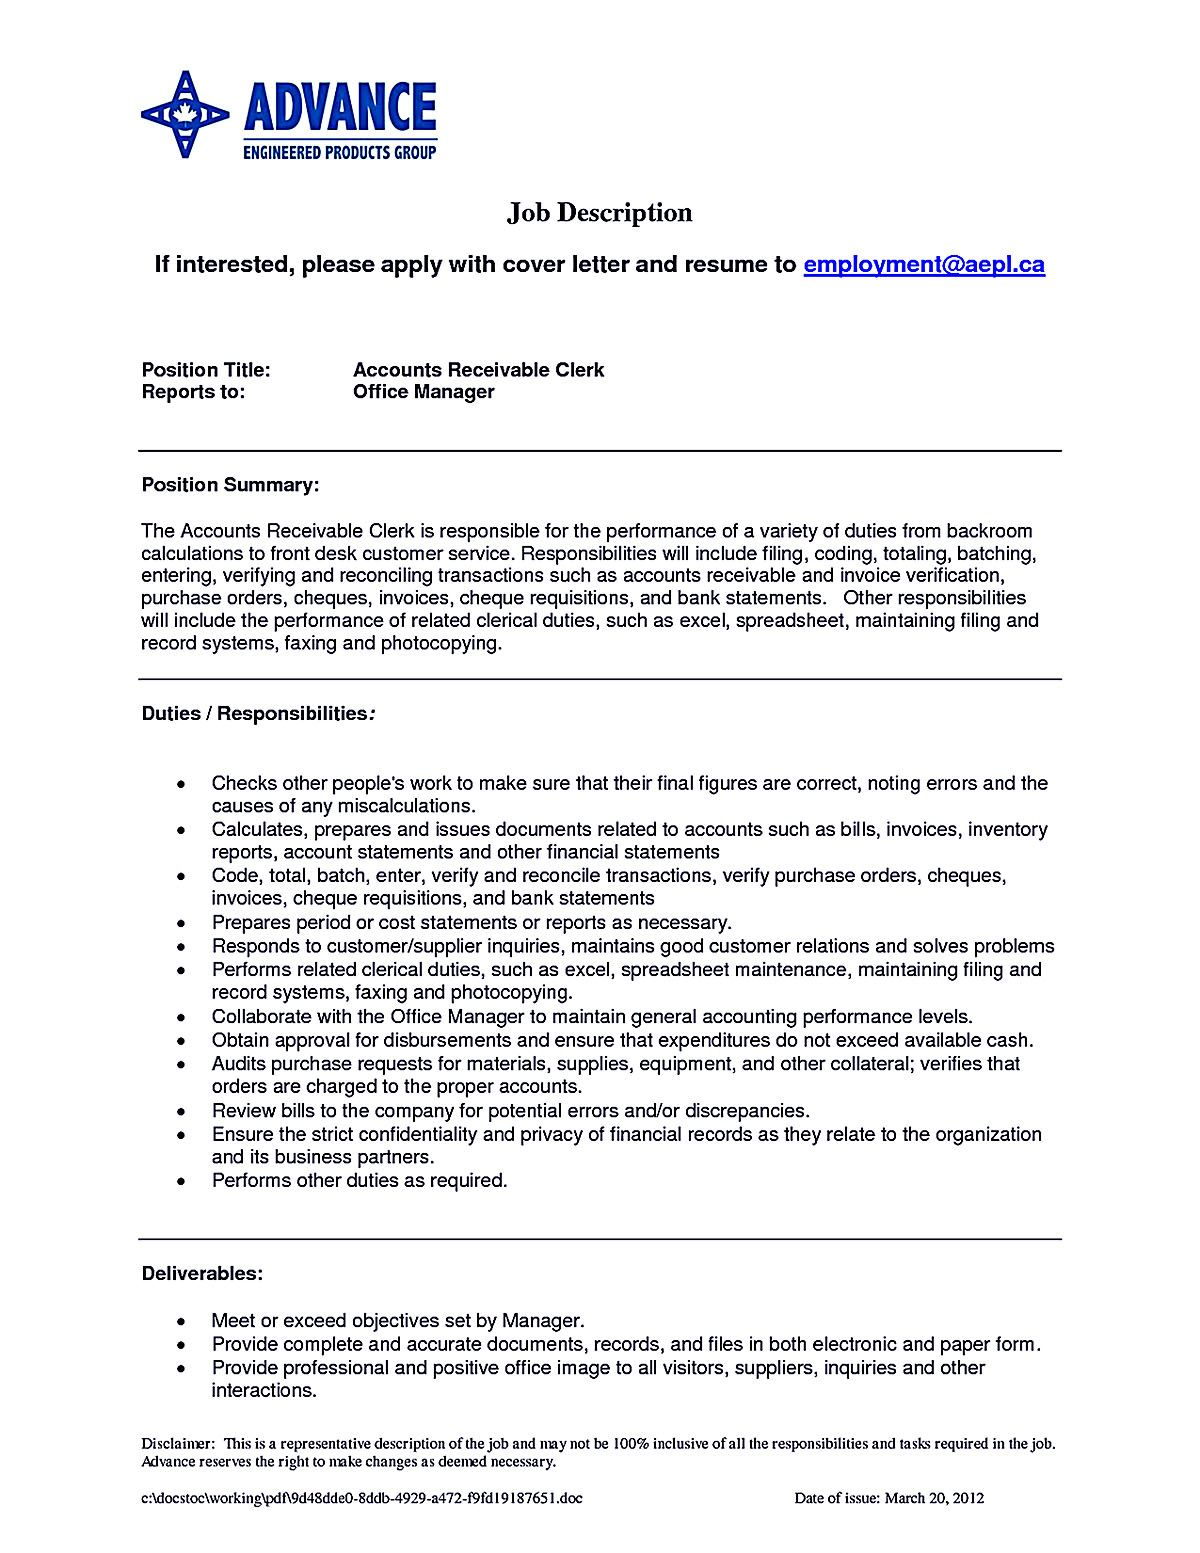 account receivable resume shows both technical and interpersonal account receivable resume shows both technical and interpersonal skills you have your professional summary or